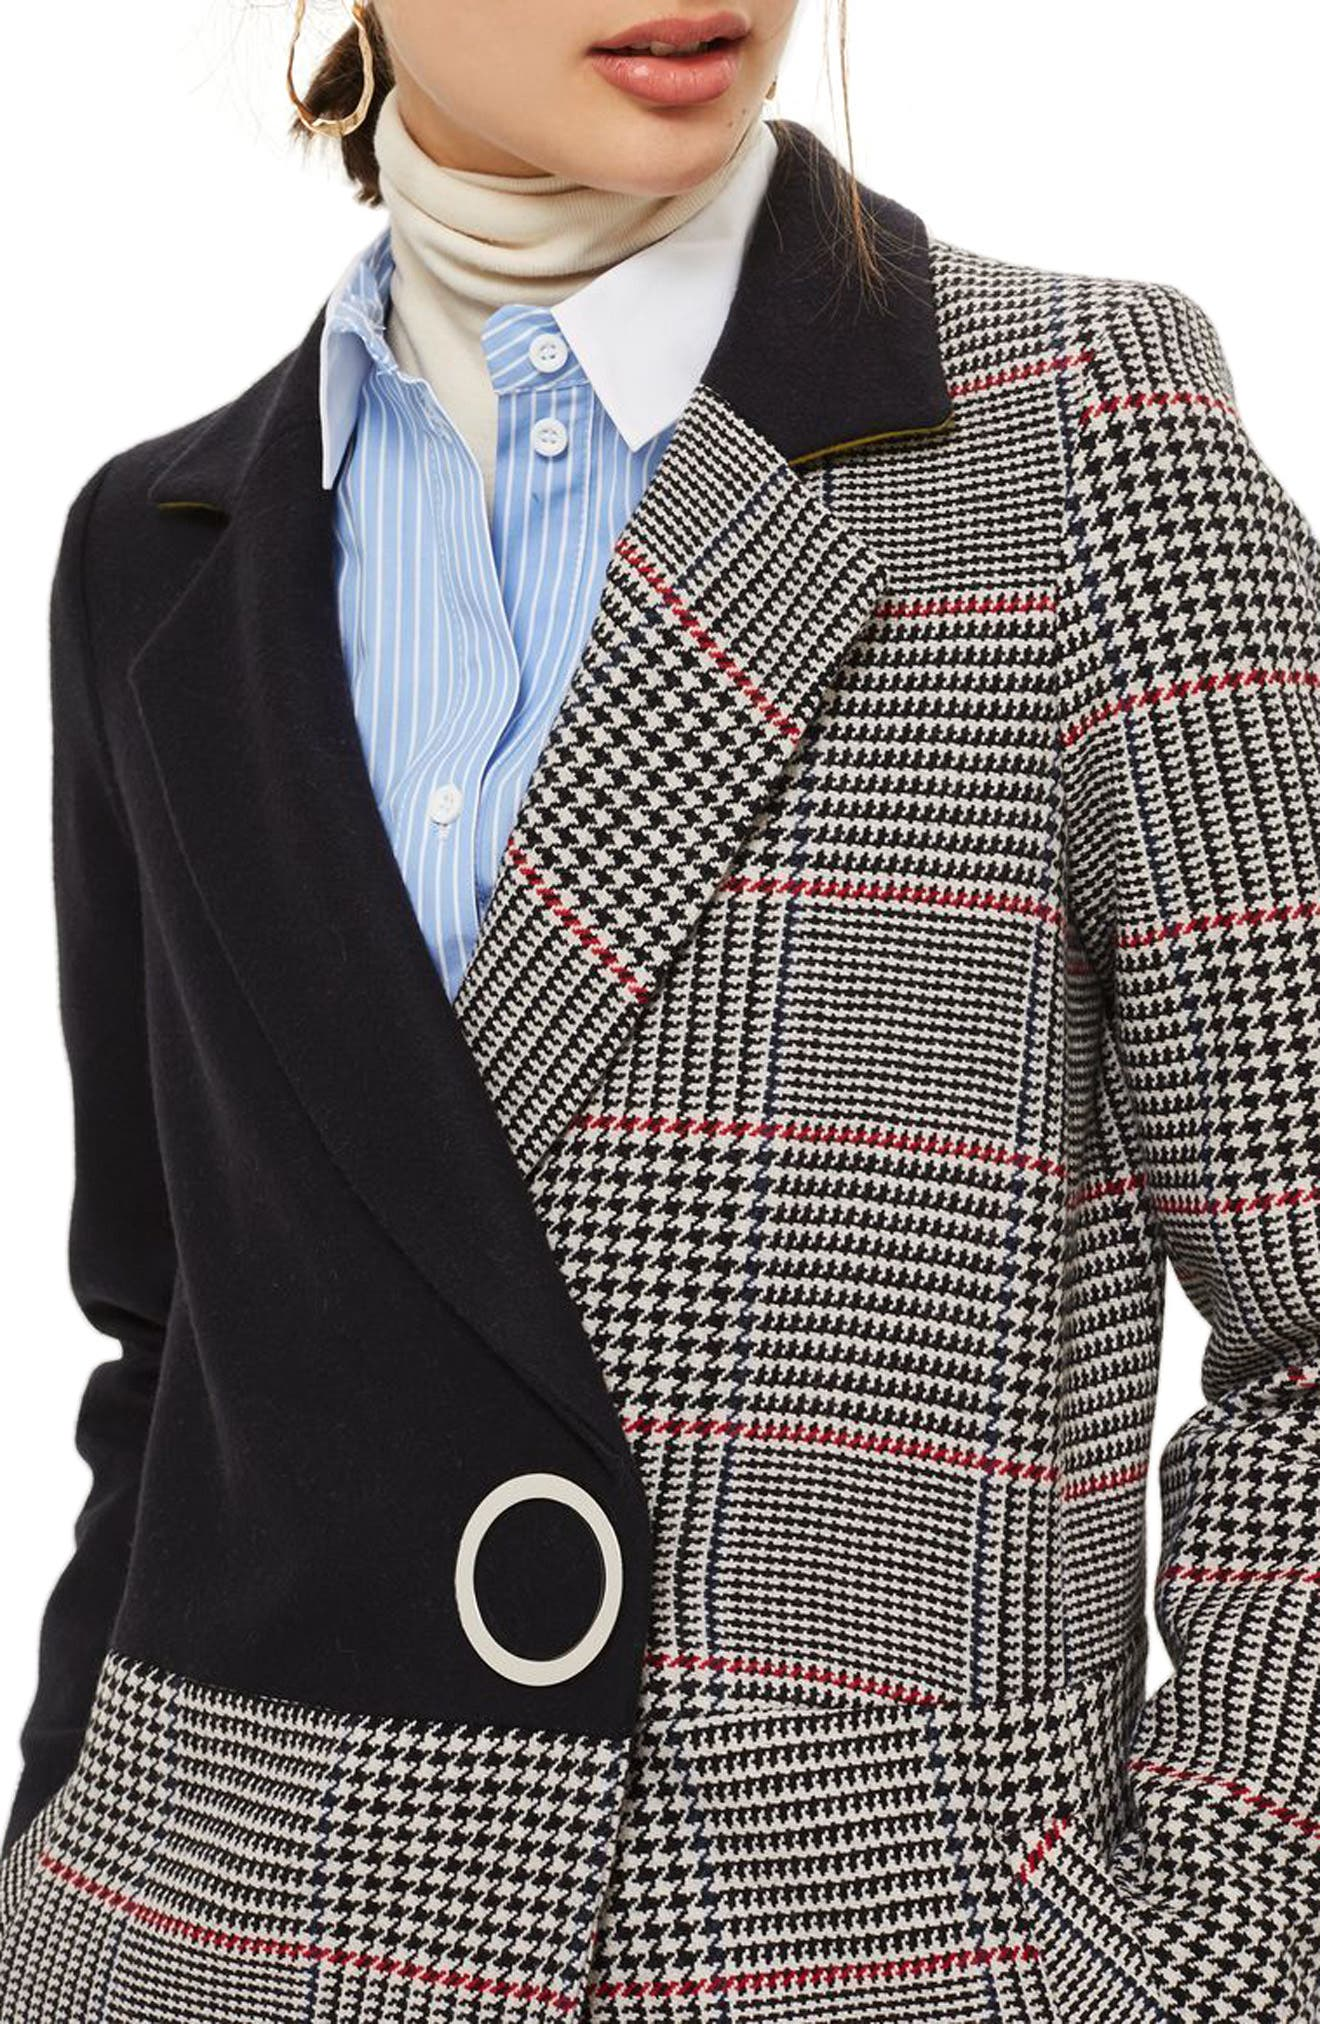 Colorblock Check Wool Blend Coat,                         Main,                         color, Navy Blue Multi